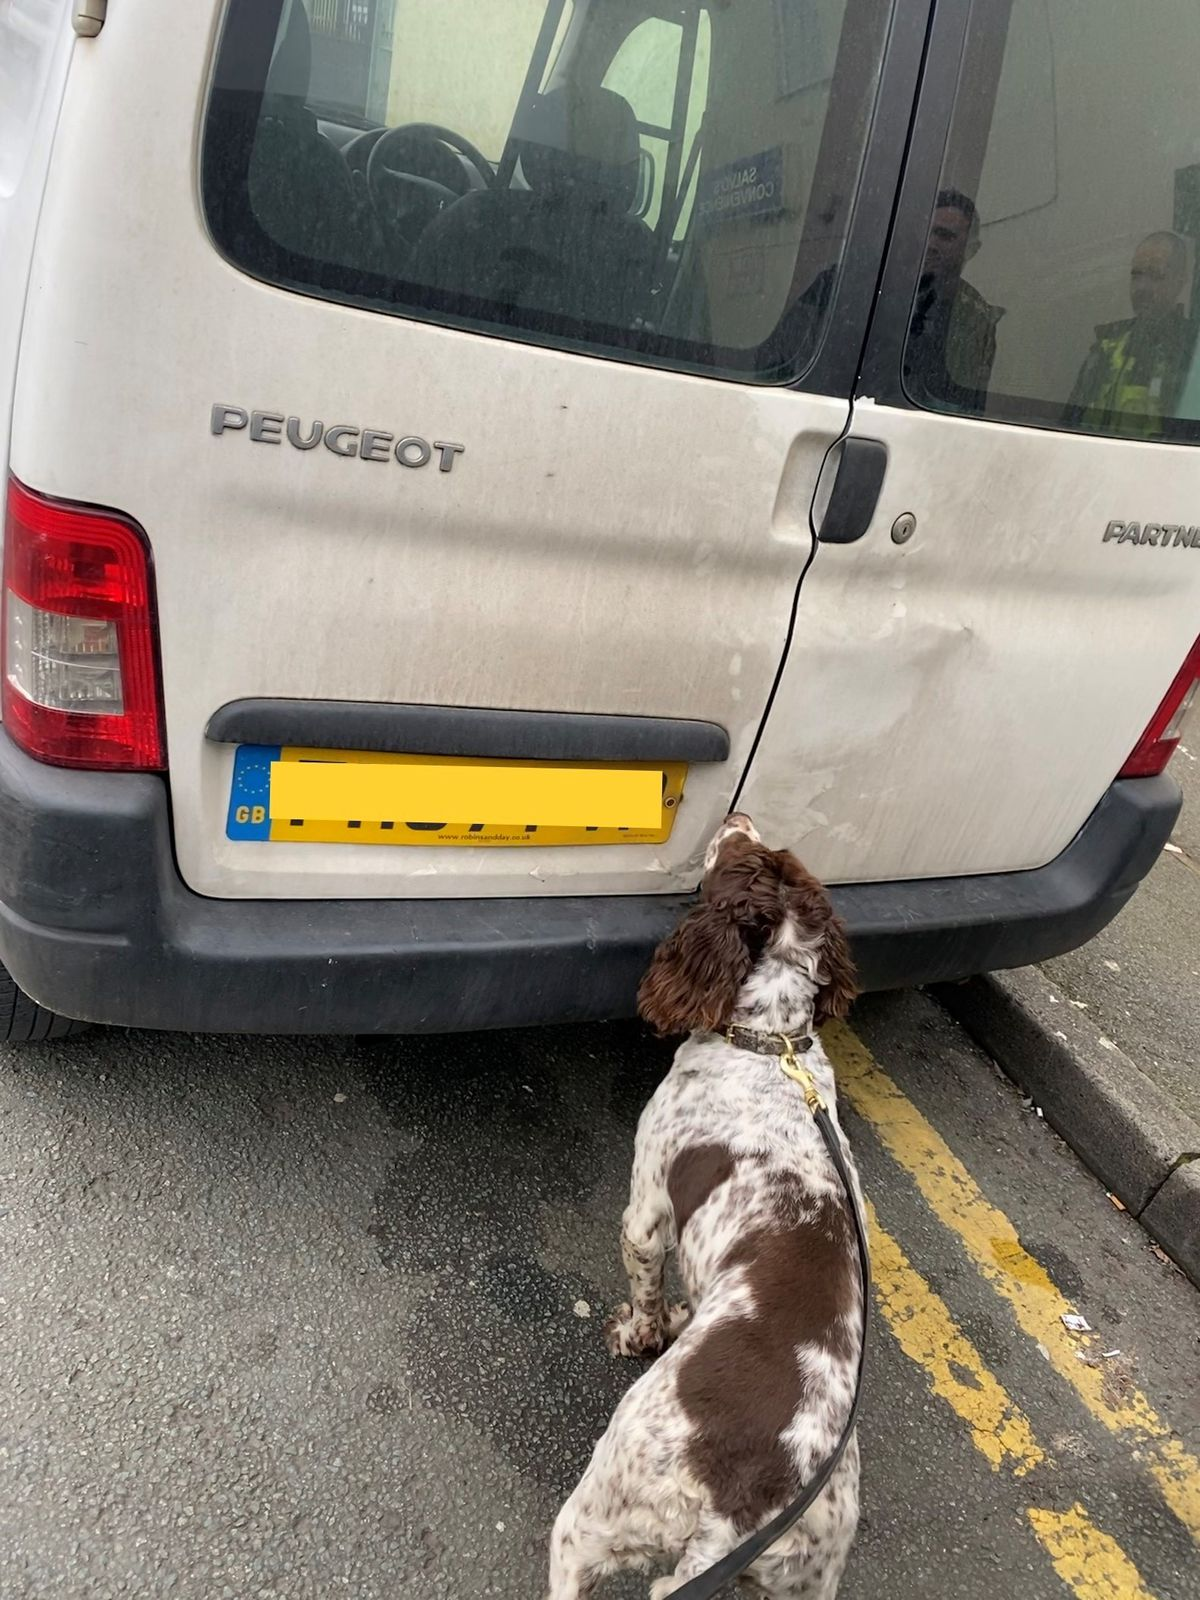 Tobacco detection dog Scamp at the van